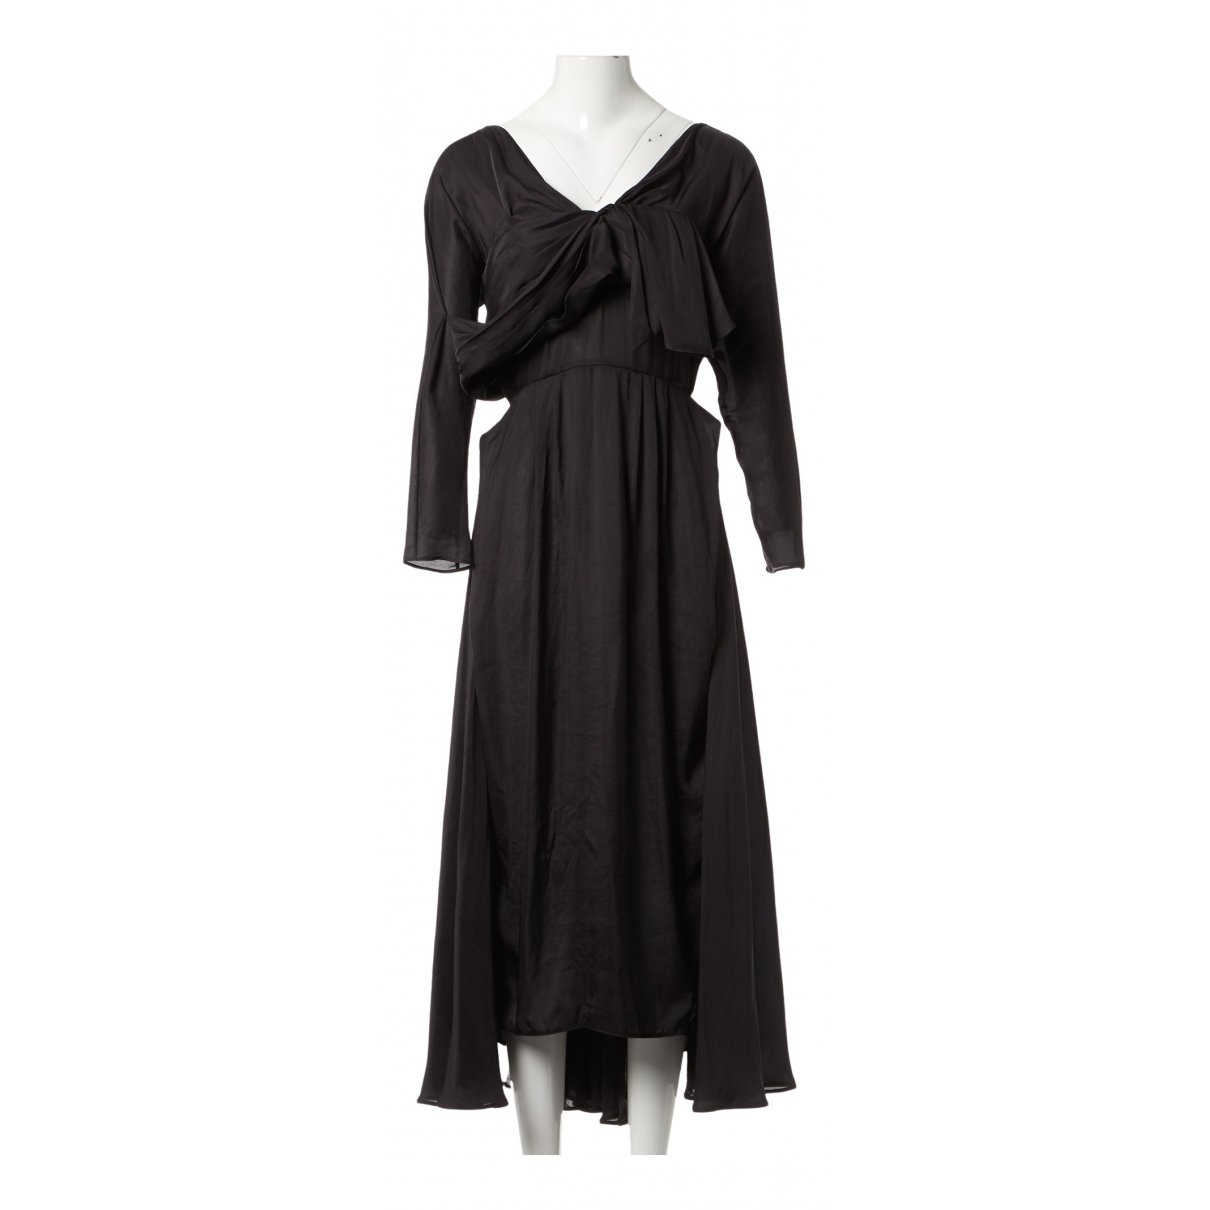 Prada N Black dress for Women 42 IT